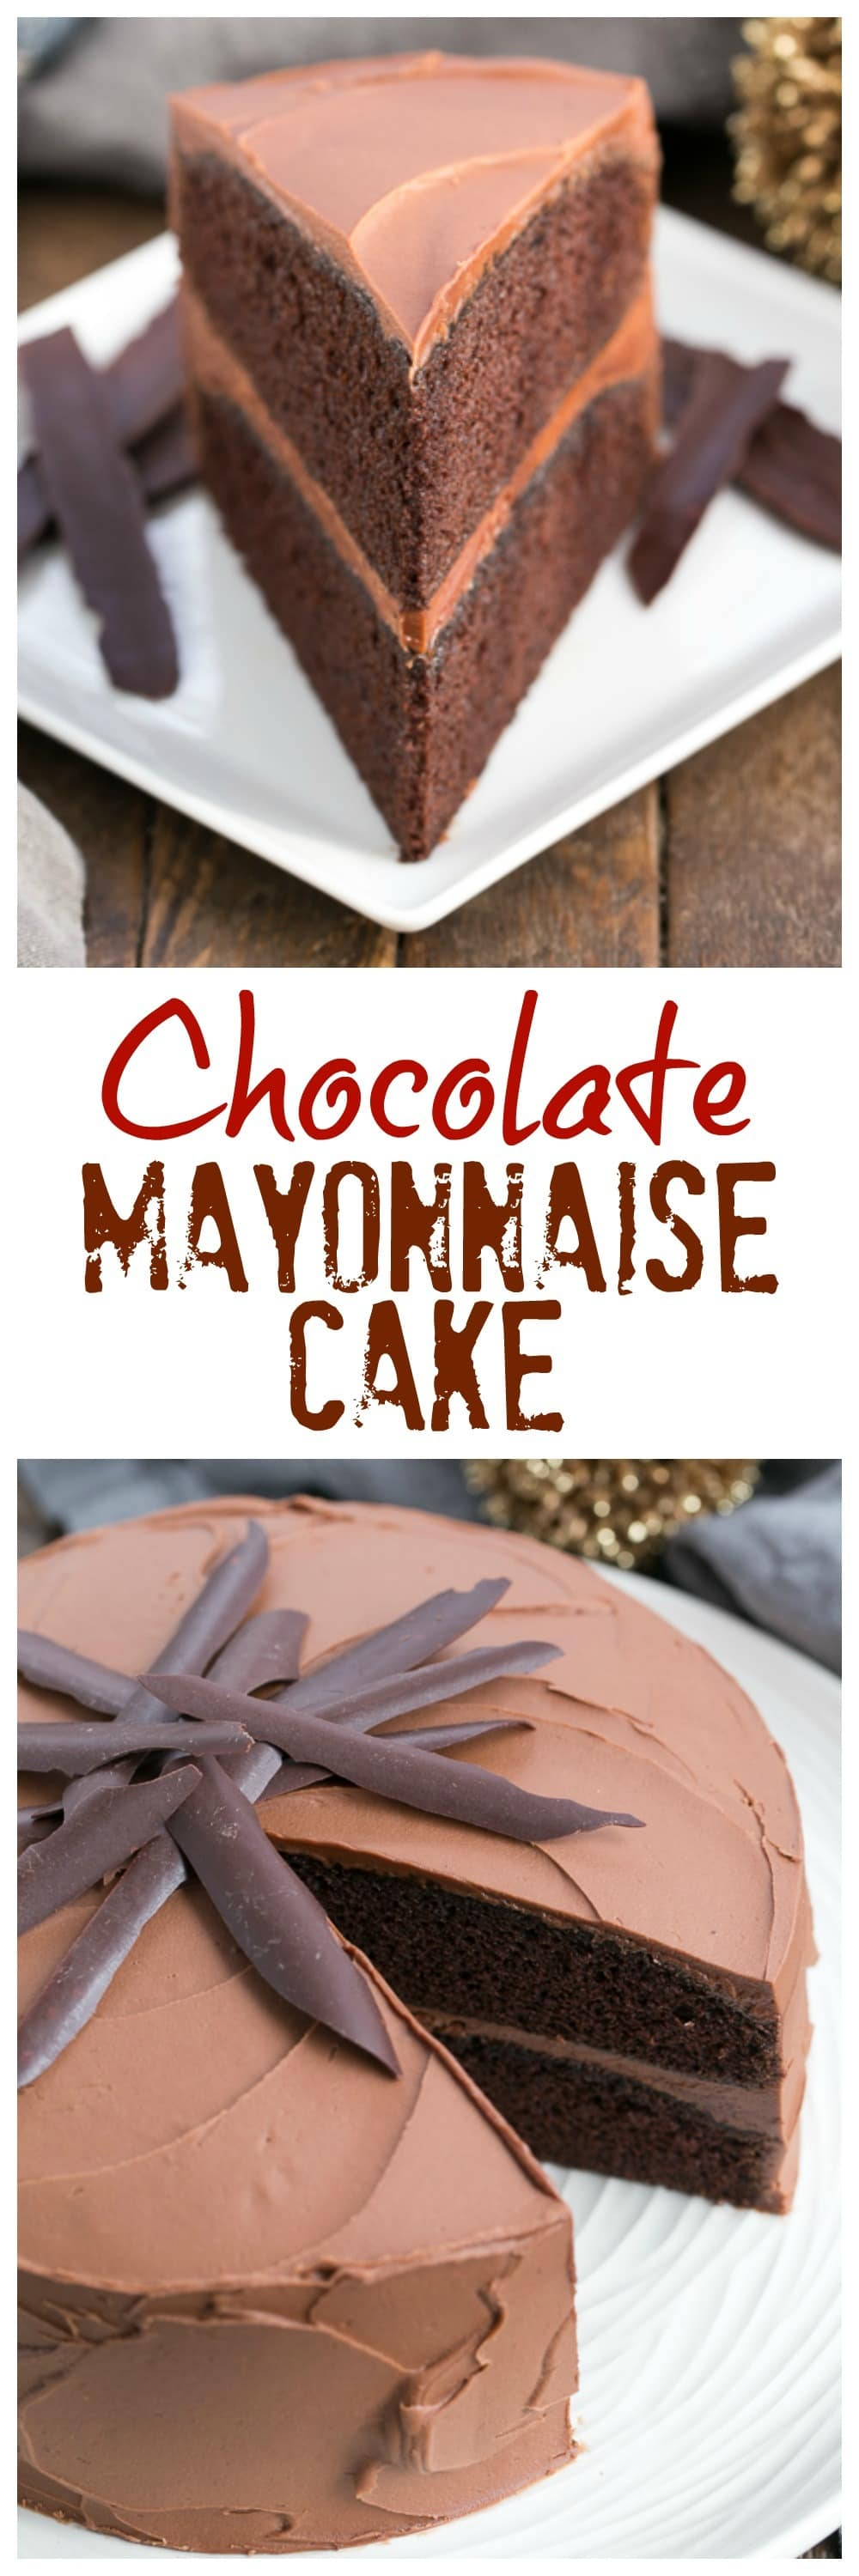 Chocolate Mayonnaise Cake - That Skinny Chick Can Bake